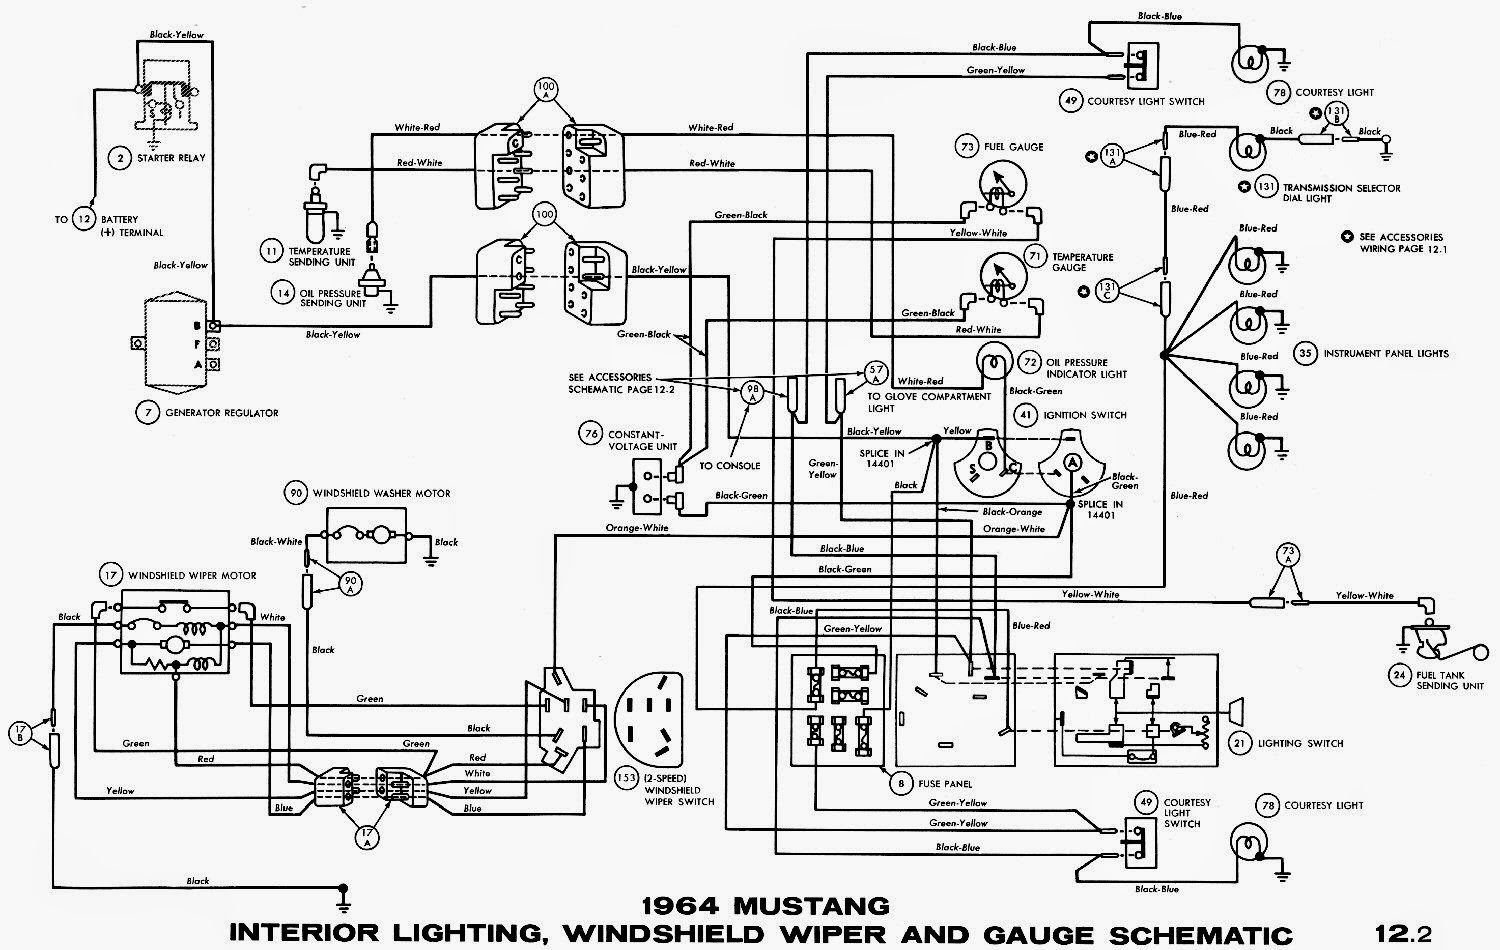 1964 mustang wiring diagrams schematic wiring diagrams rh freewiringdiagrams blogspot com 66 mustang wiring diagram mustang wiring diagram 2016